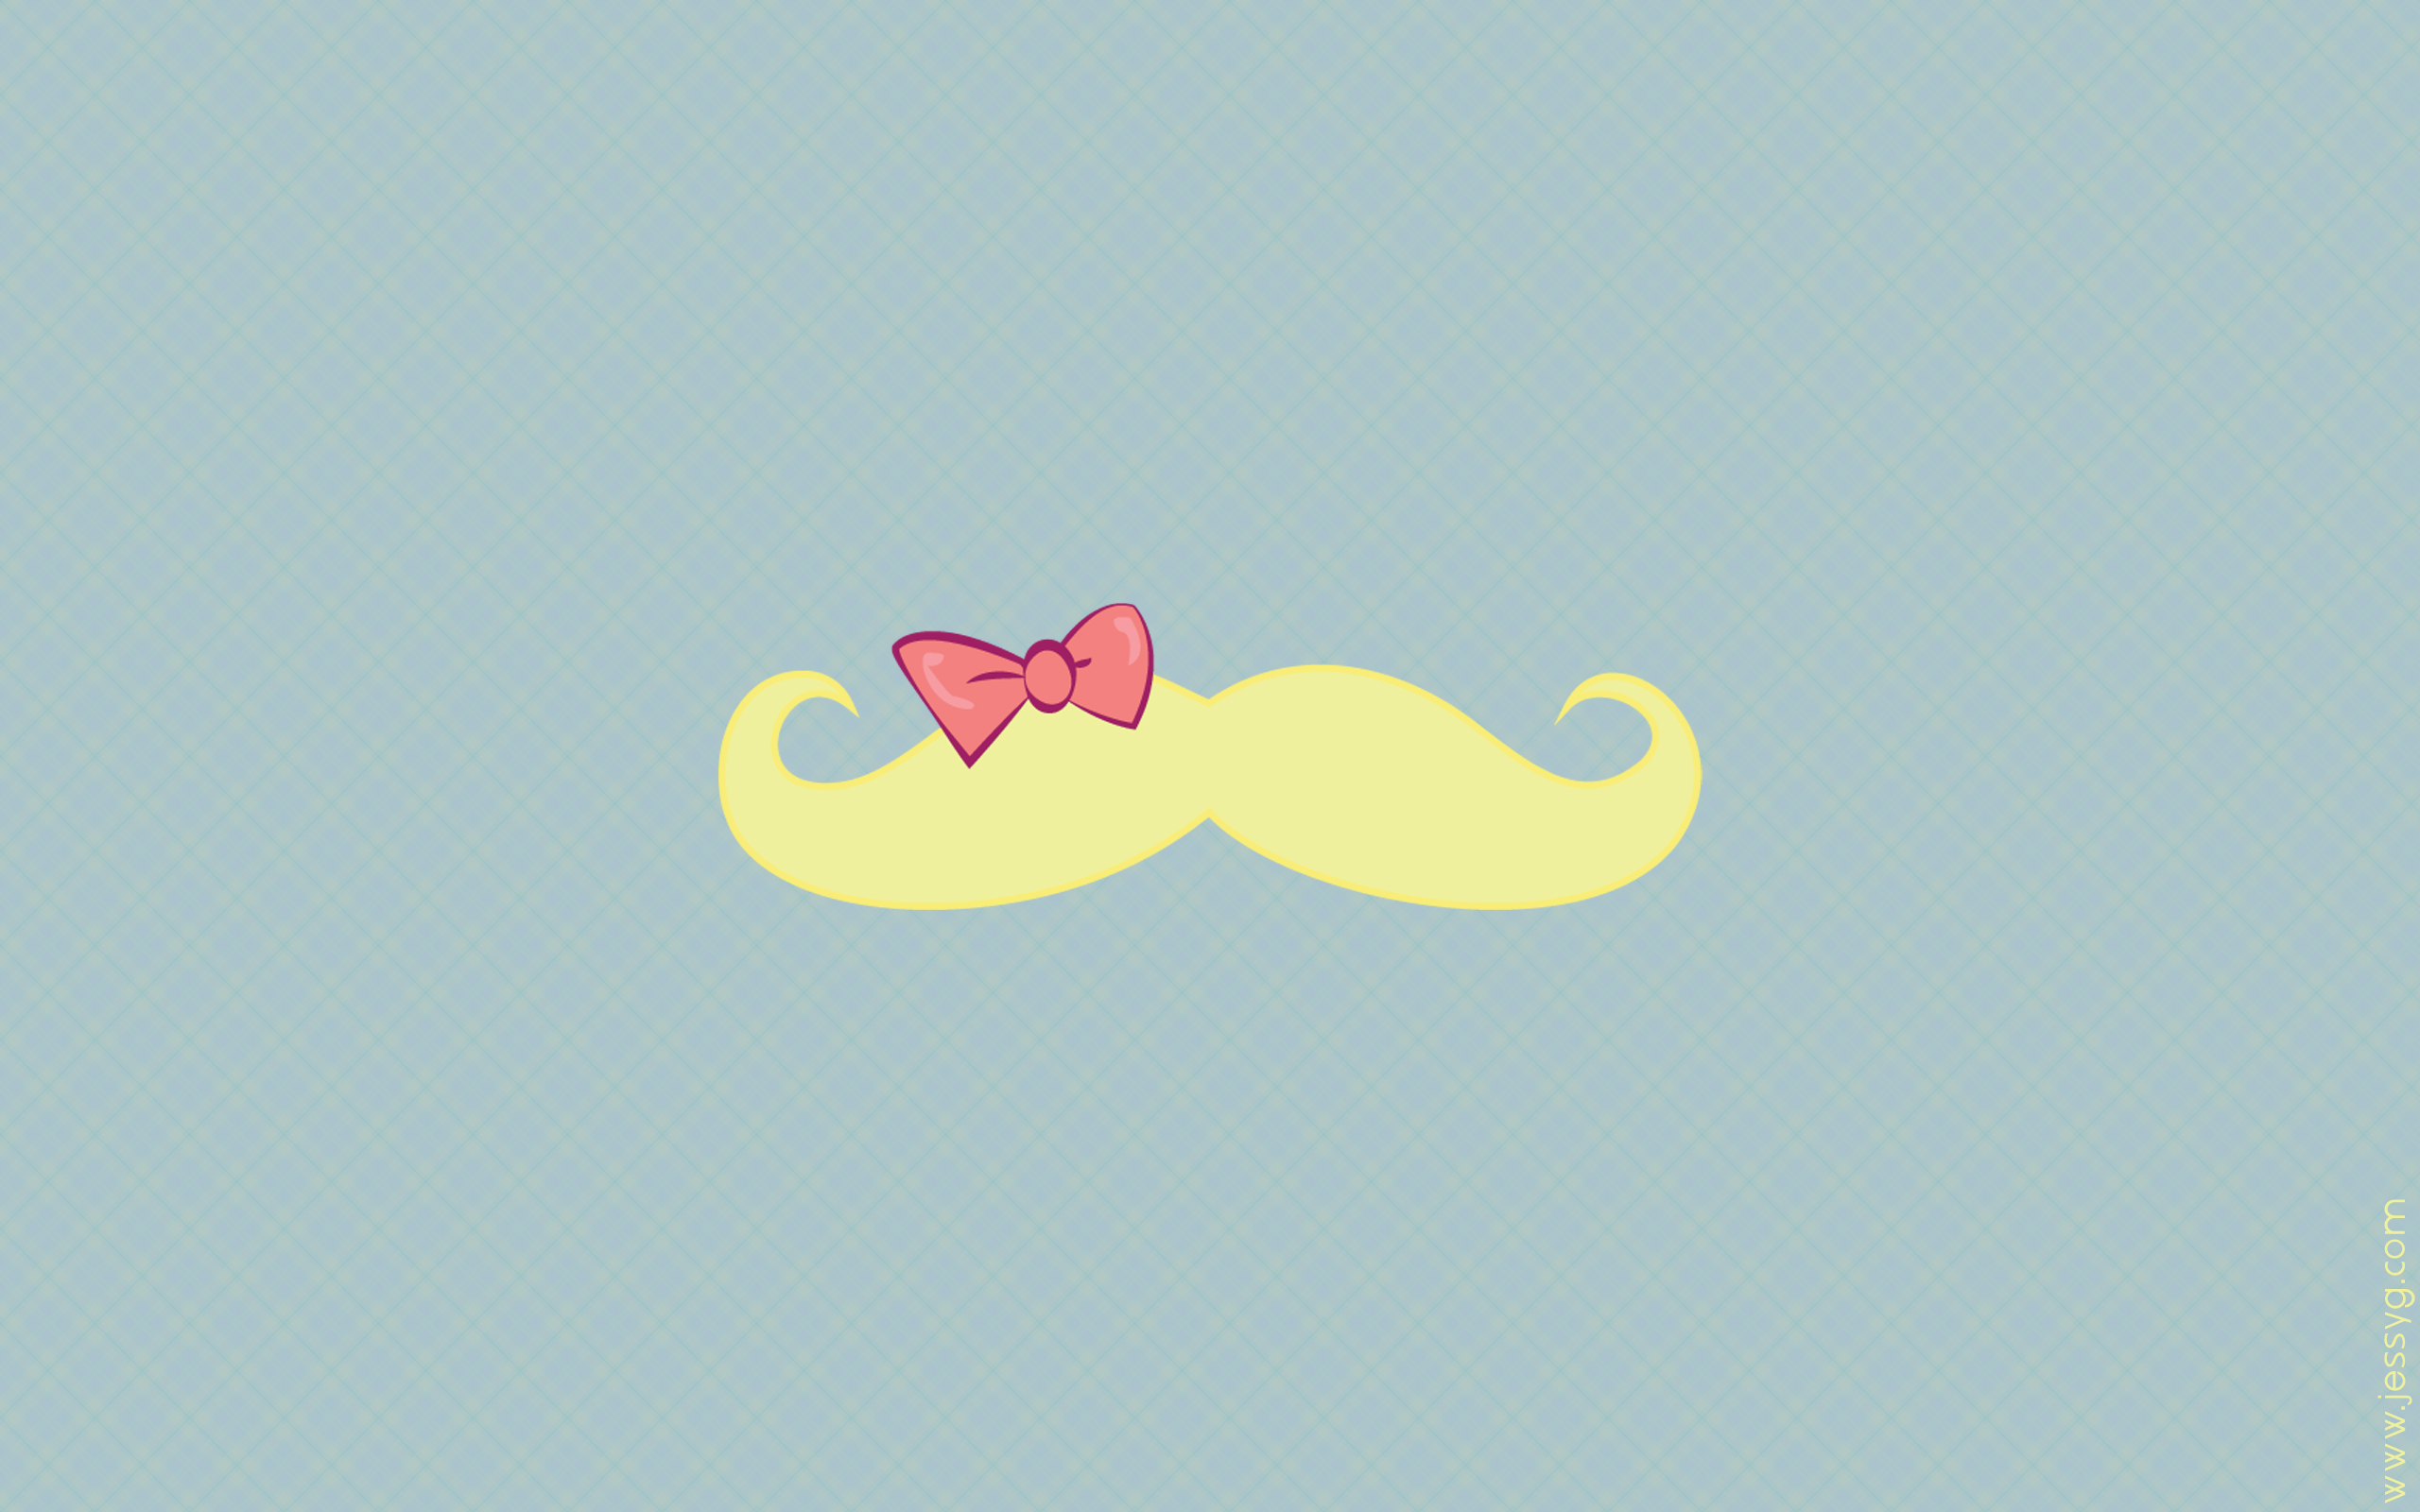 Moustache Wallpaper